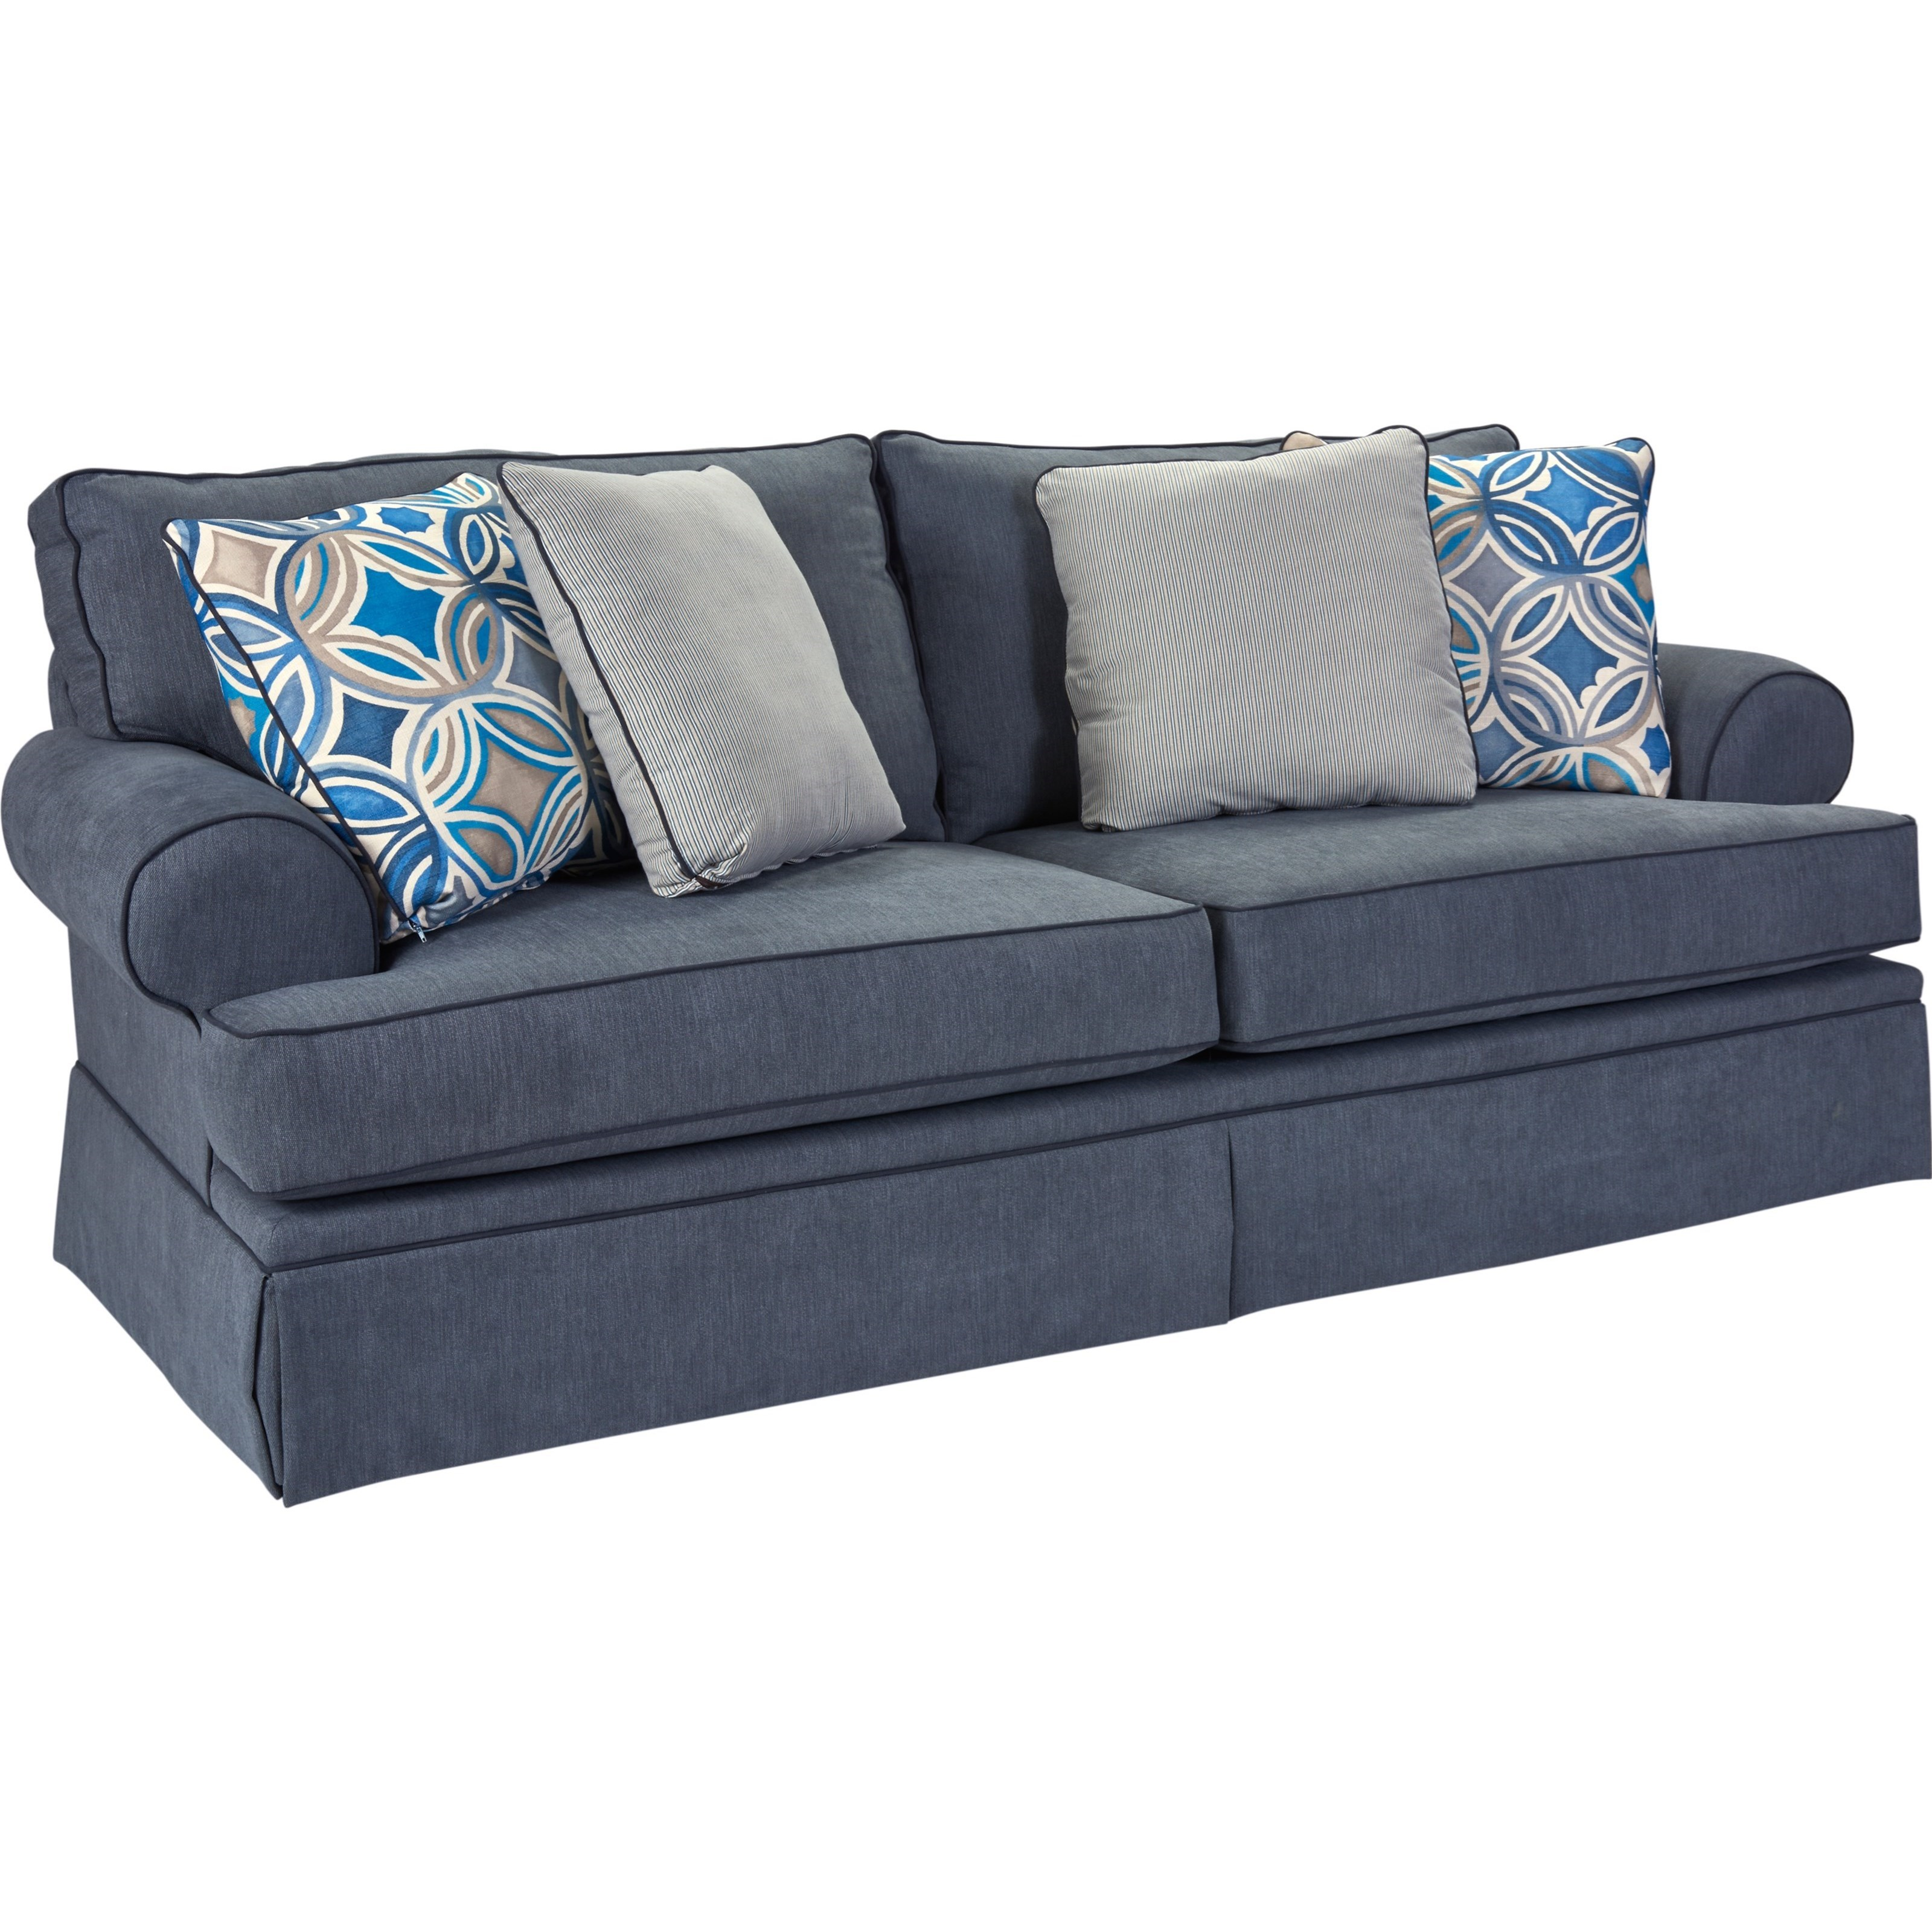 Broyhill Furniture Emily Queen Sleeper - Item Number: 6262-7-4022-44